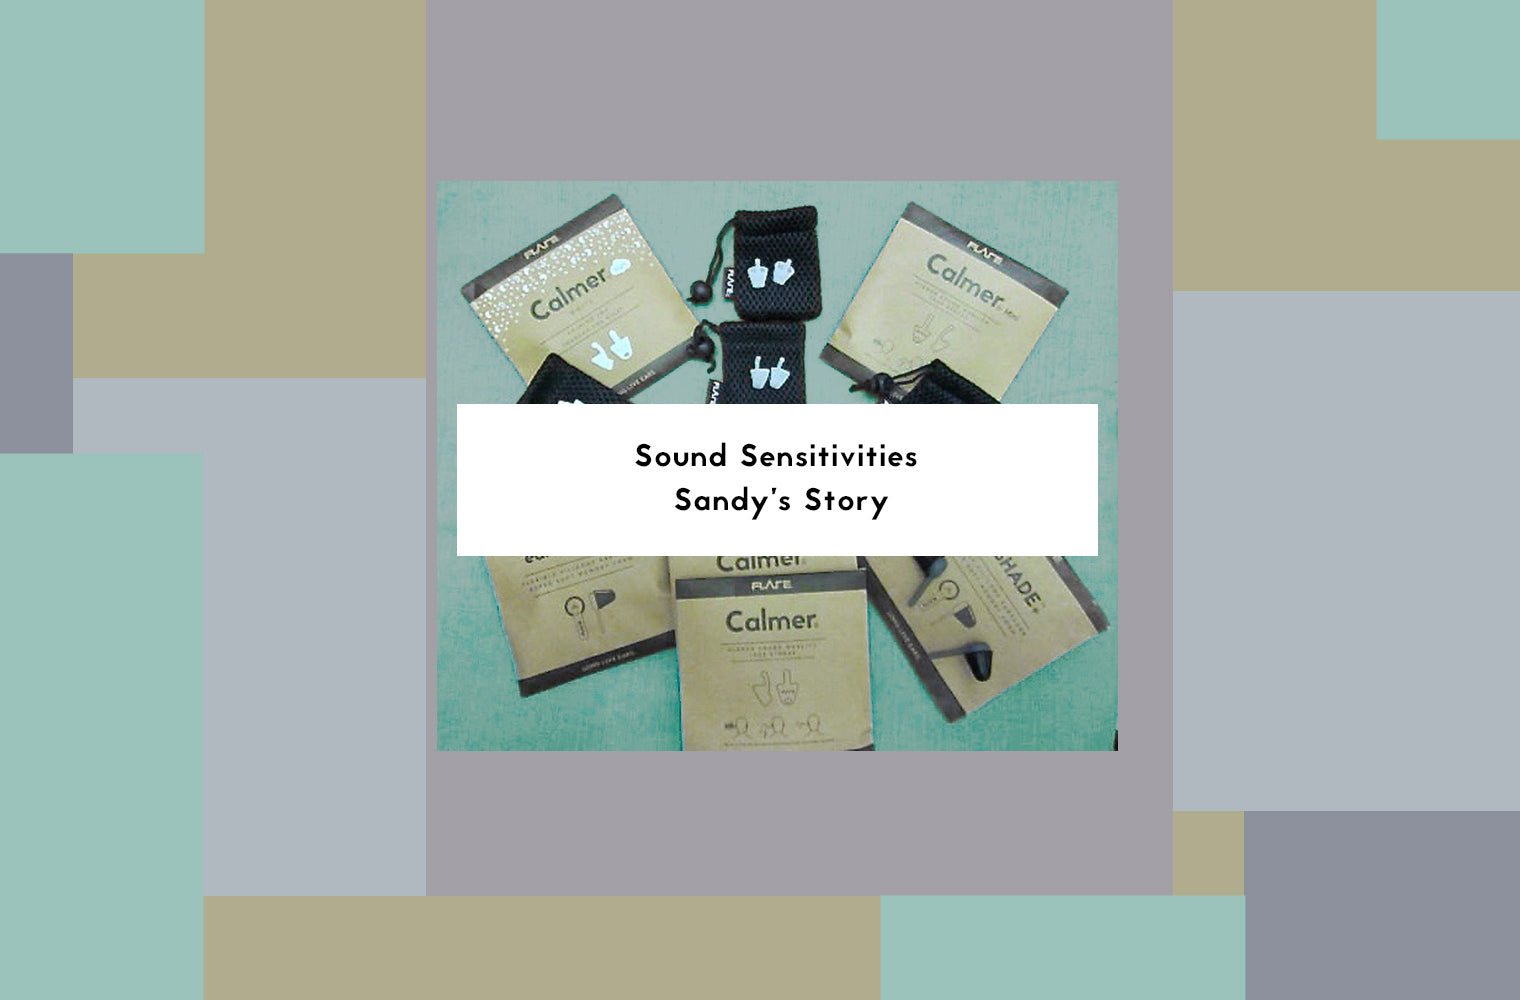 Sound Sensitivities And Calmer: Sandy's Story